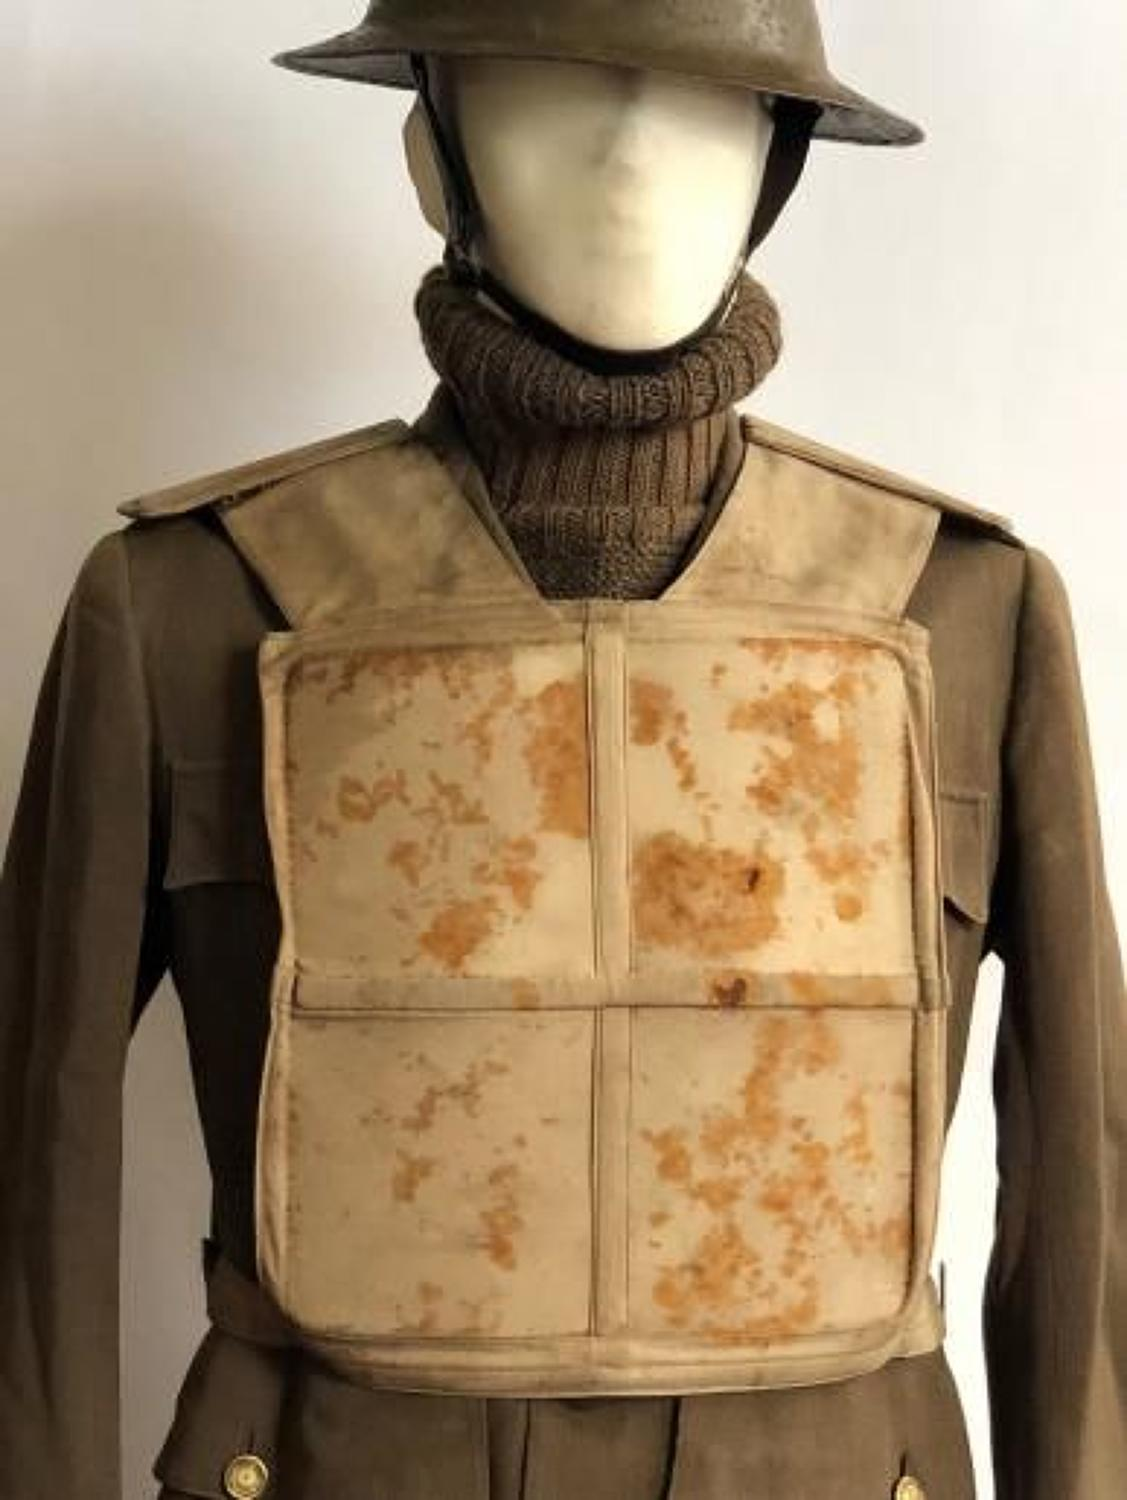 WW1 Attributed 4th Bn Welsh Regiment Officer's Dayfield Body Armour